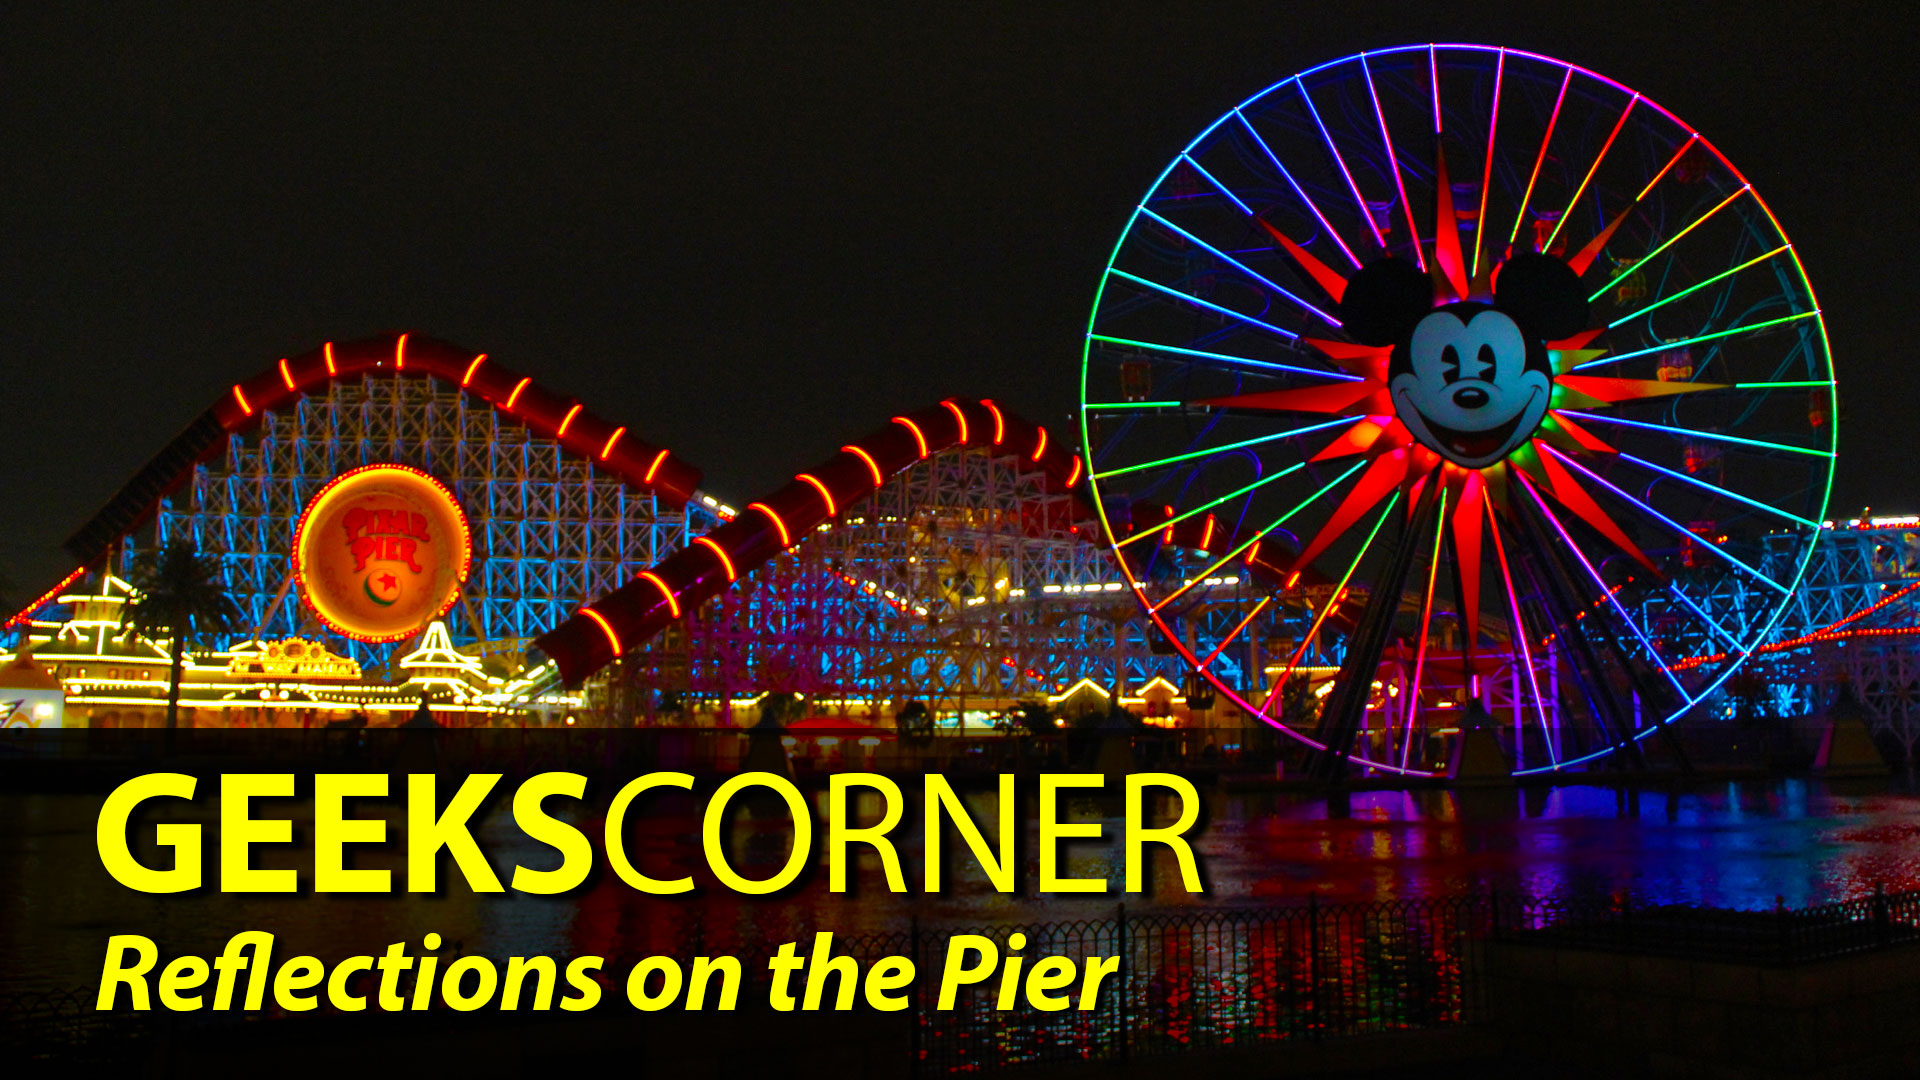 Reflections on the Pier - GEEKS CORNER - Episode 839